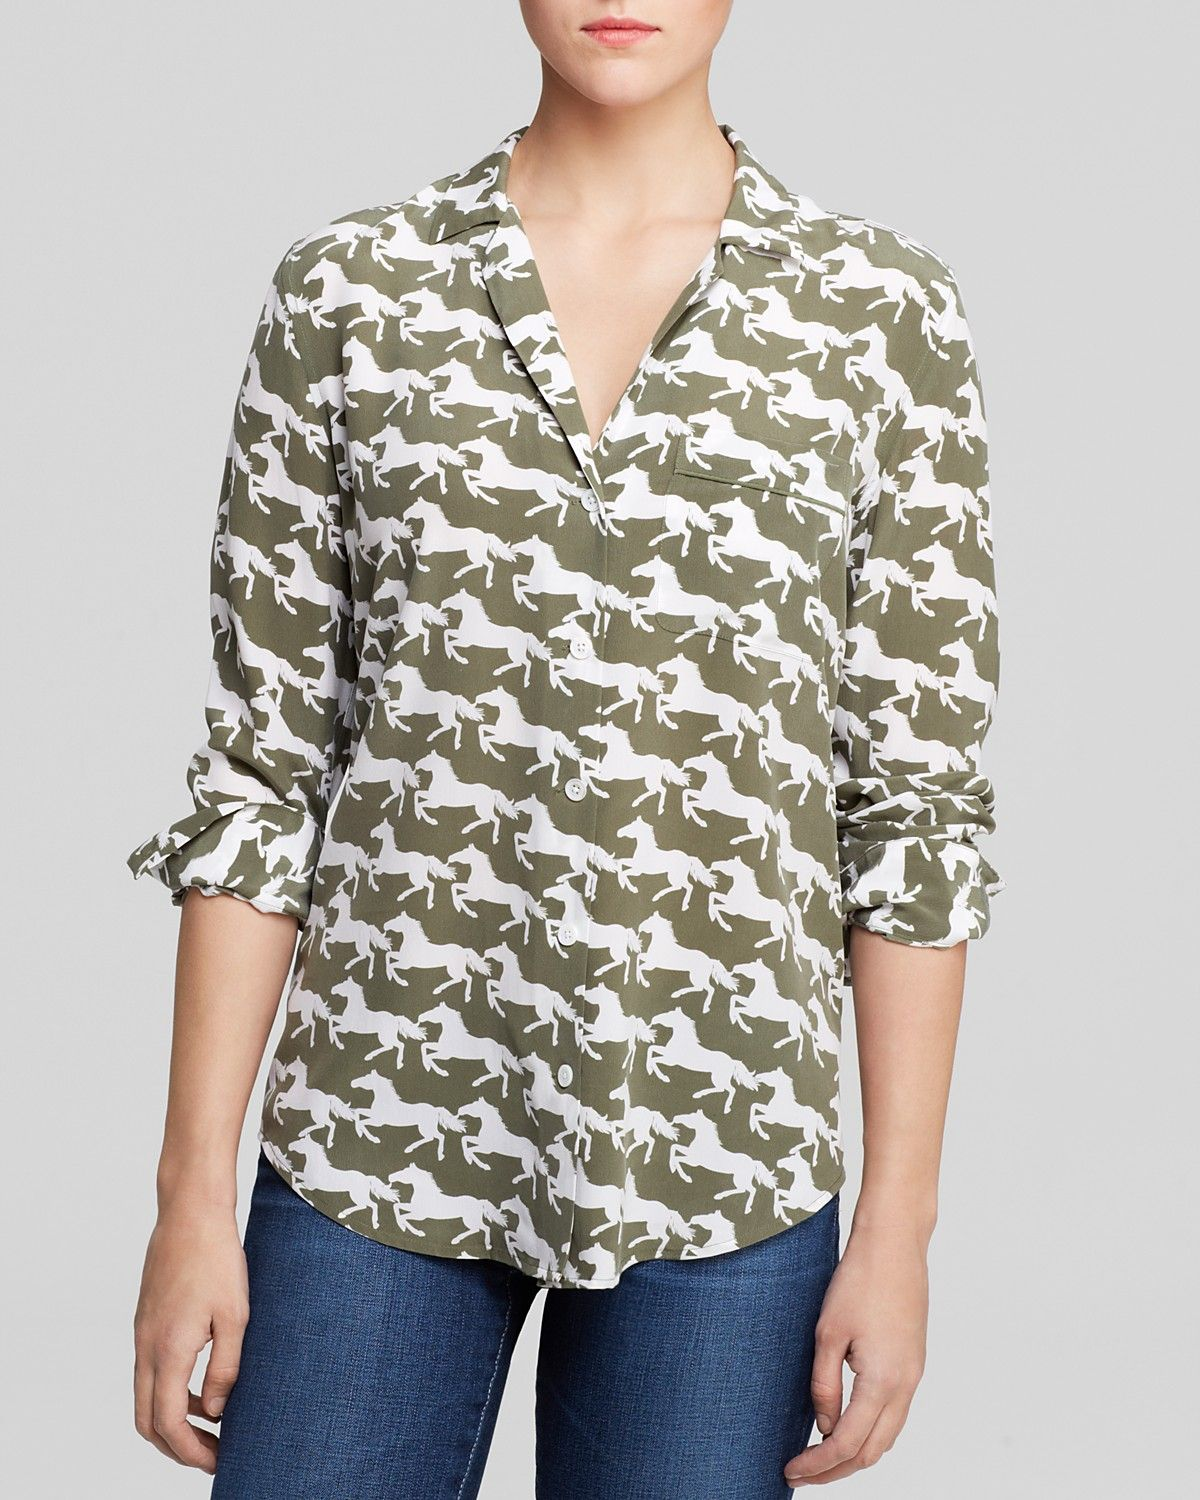 4f70f0cfe0a93 TOP  printed shirt   notched collar Equipment Blouse - Keira Arabian Trail  Print